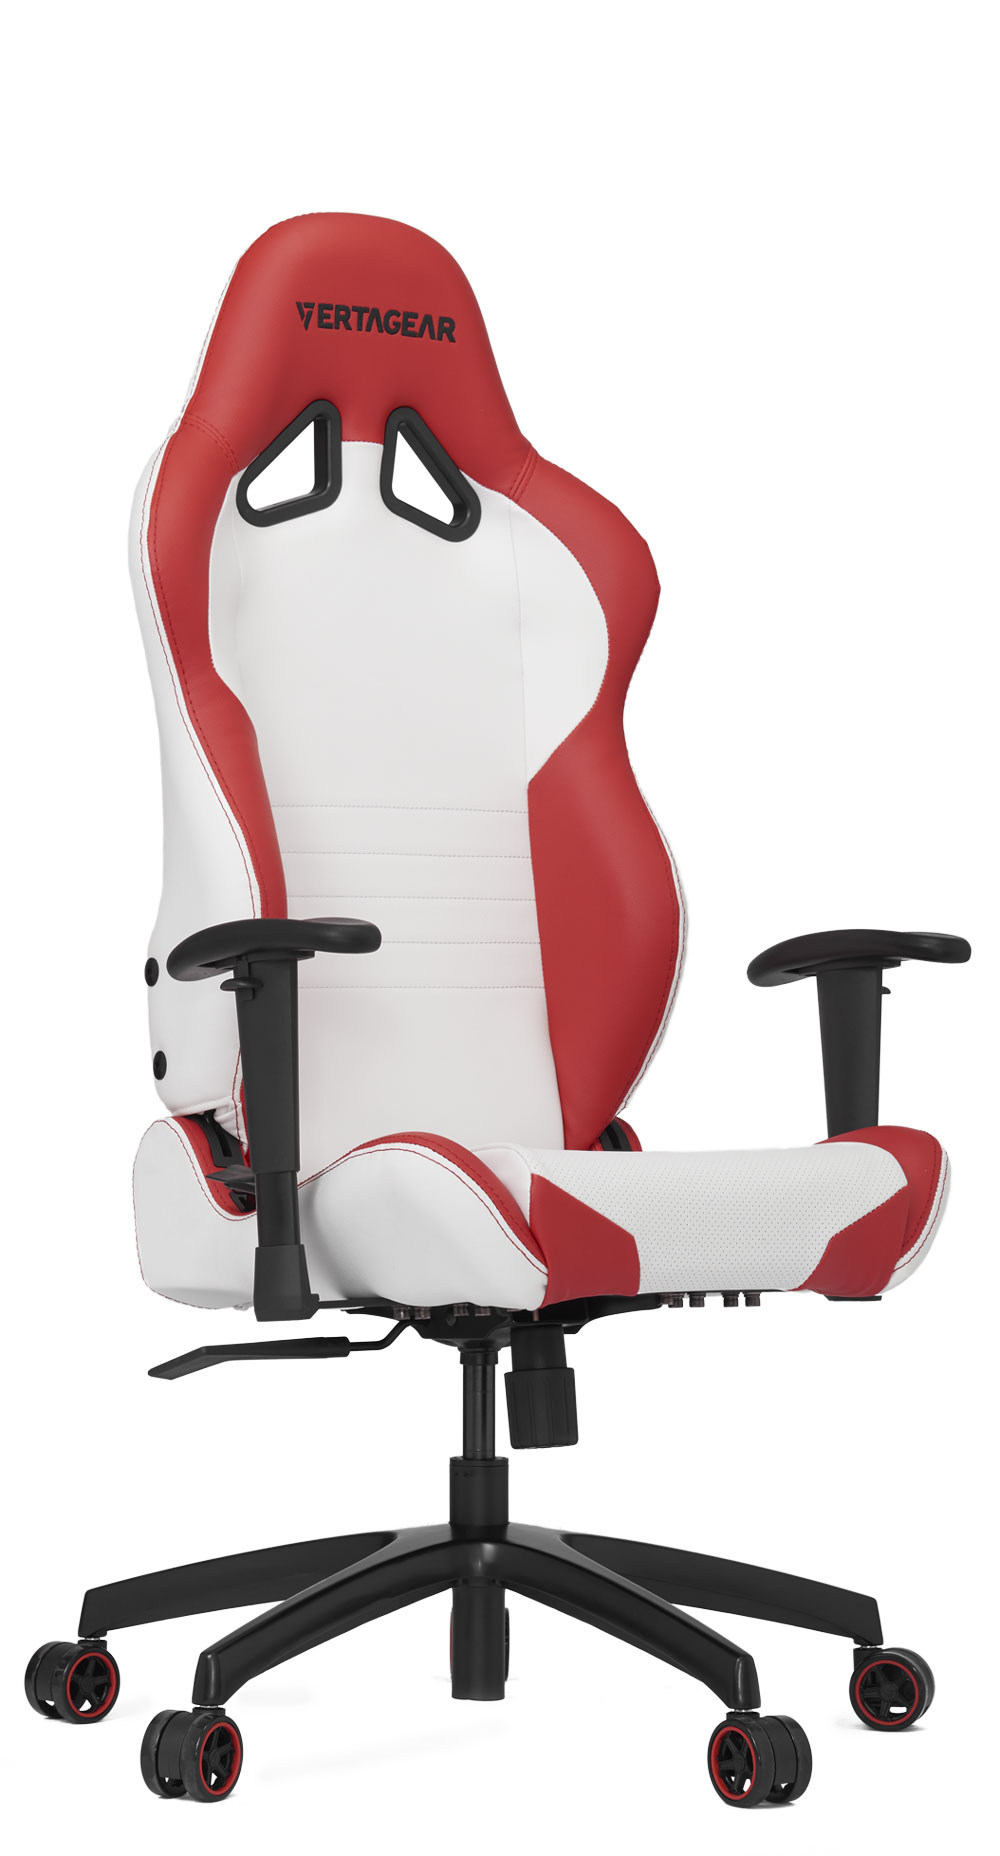 Vertagear SL2000 Gaming Chair White / Red